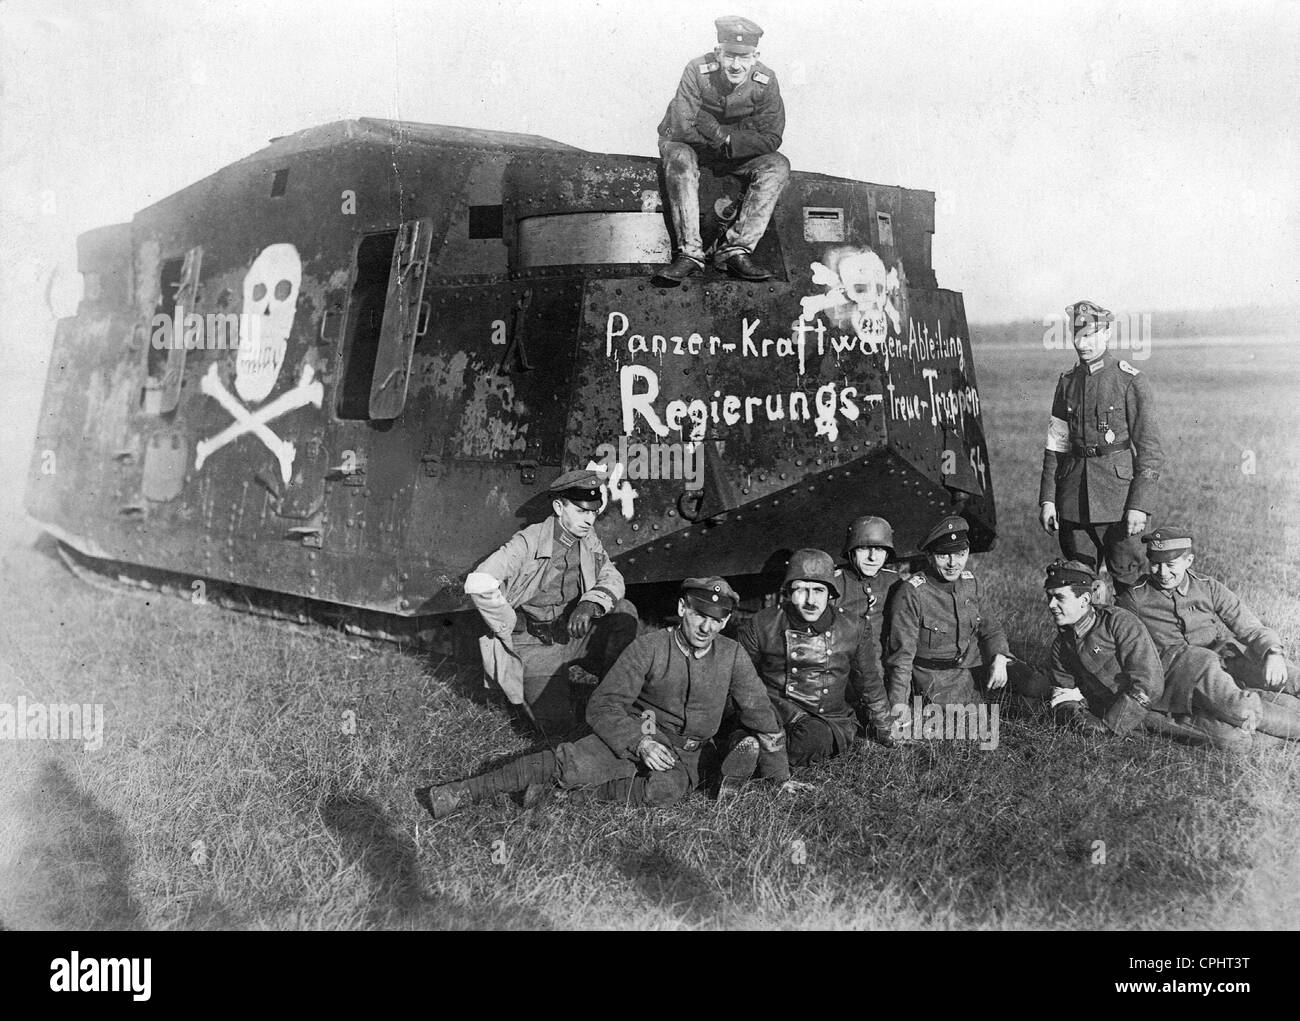 Government loyal tank during the Spartacus uprising, 1919 Stock Photo